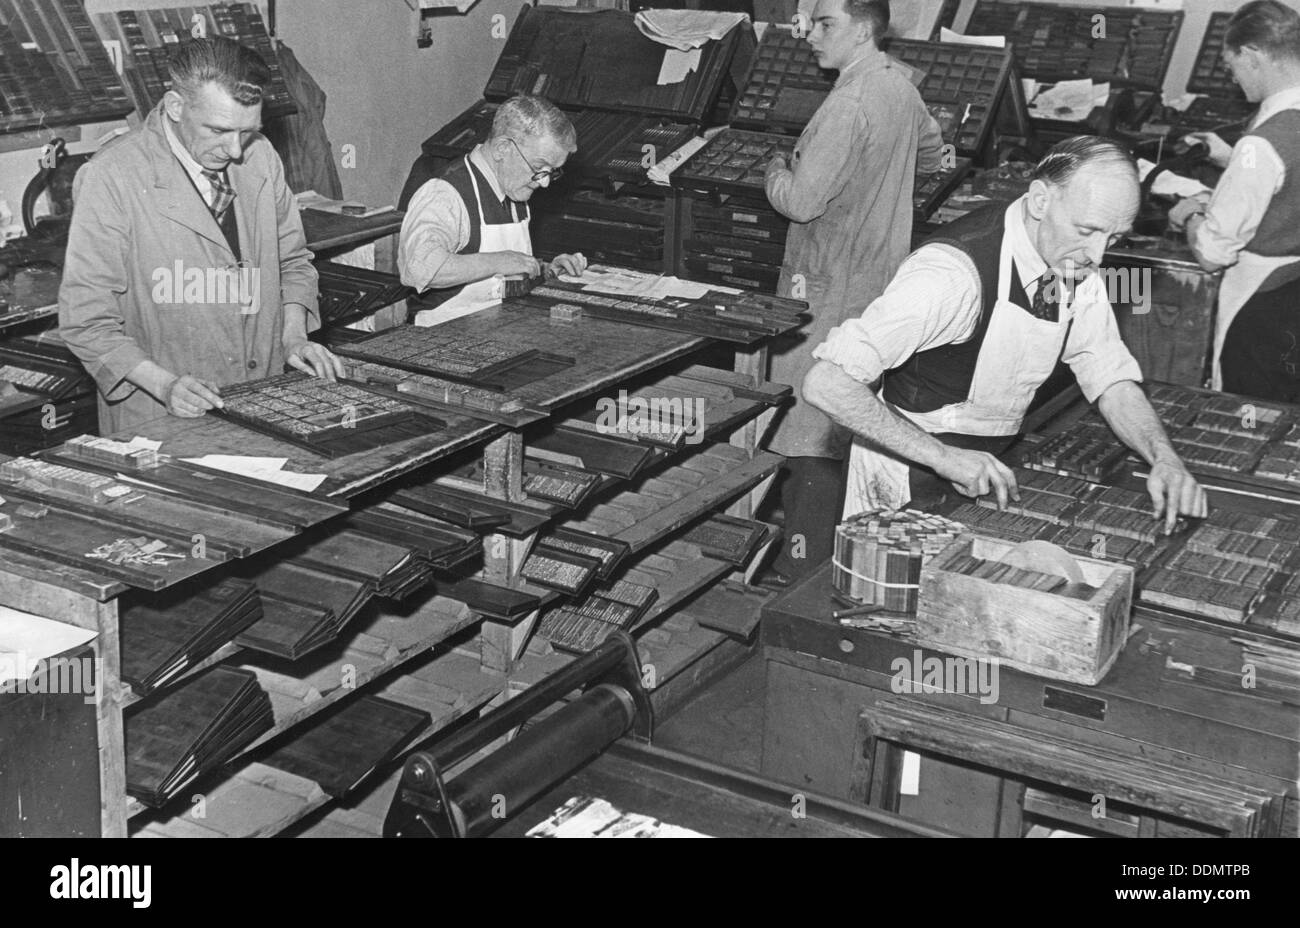 Printing room at the Jewish Chronicle, London, c1951. Artist: EH Emanuel - Stock Image